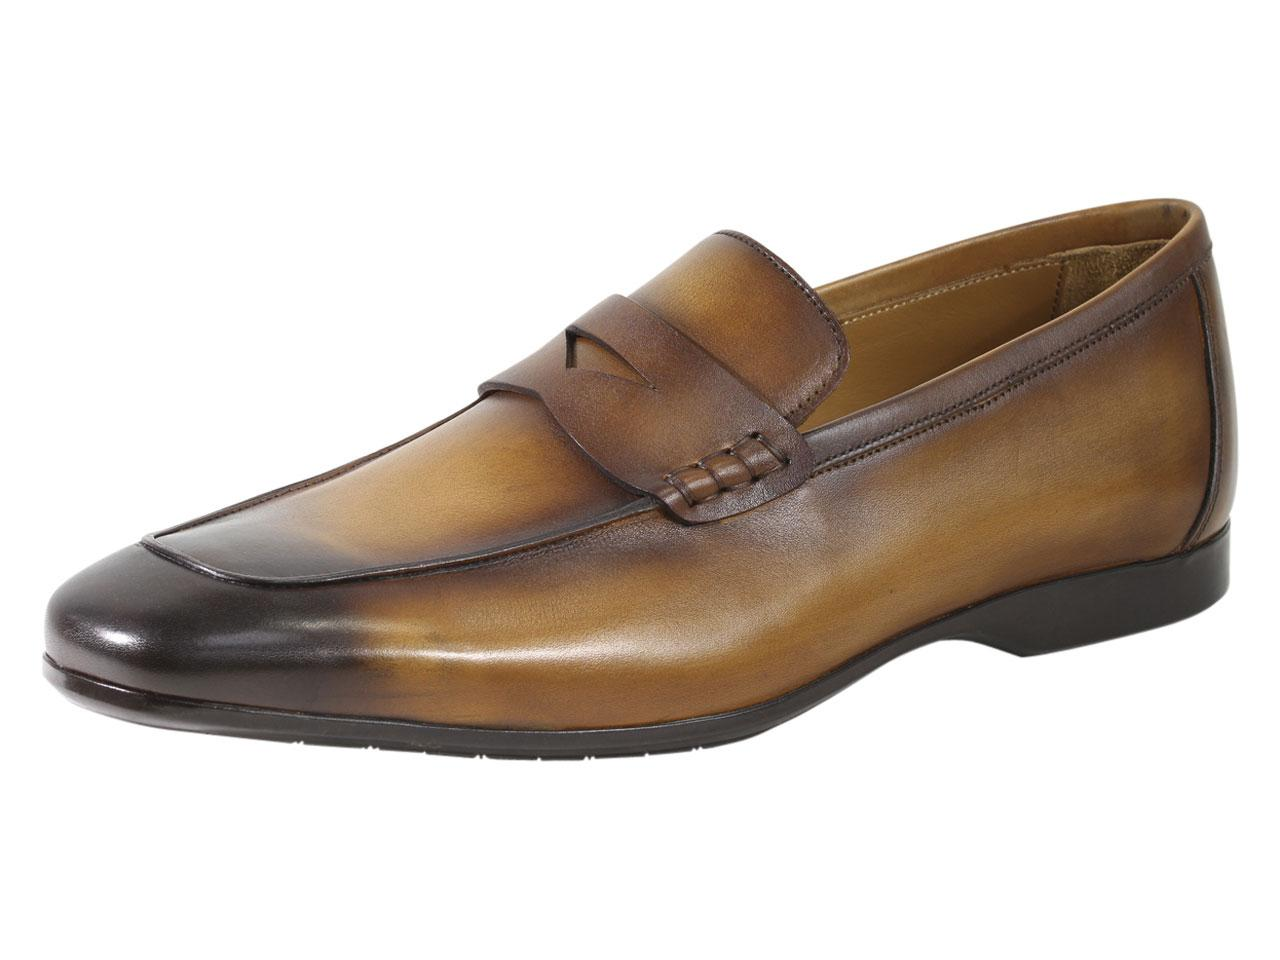 Image of Bruno Magli Men's Margot Penny Loafers Shoes - Brown - 10.5 D(M) US